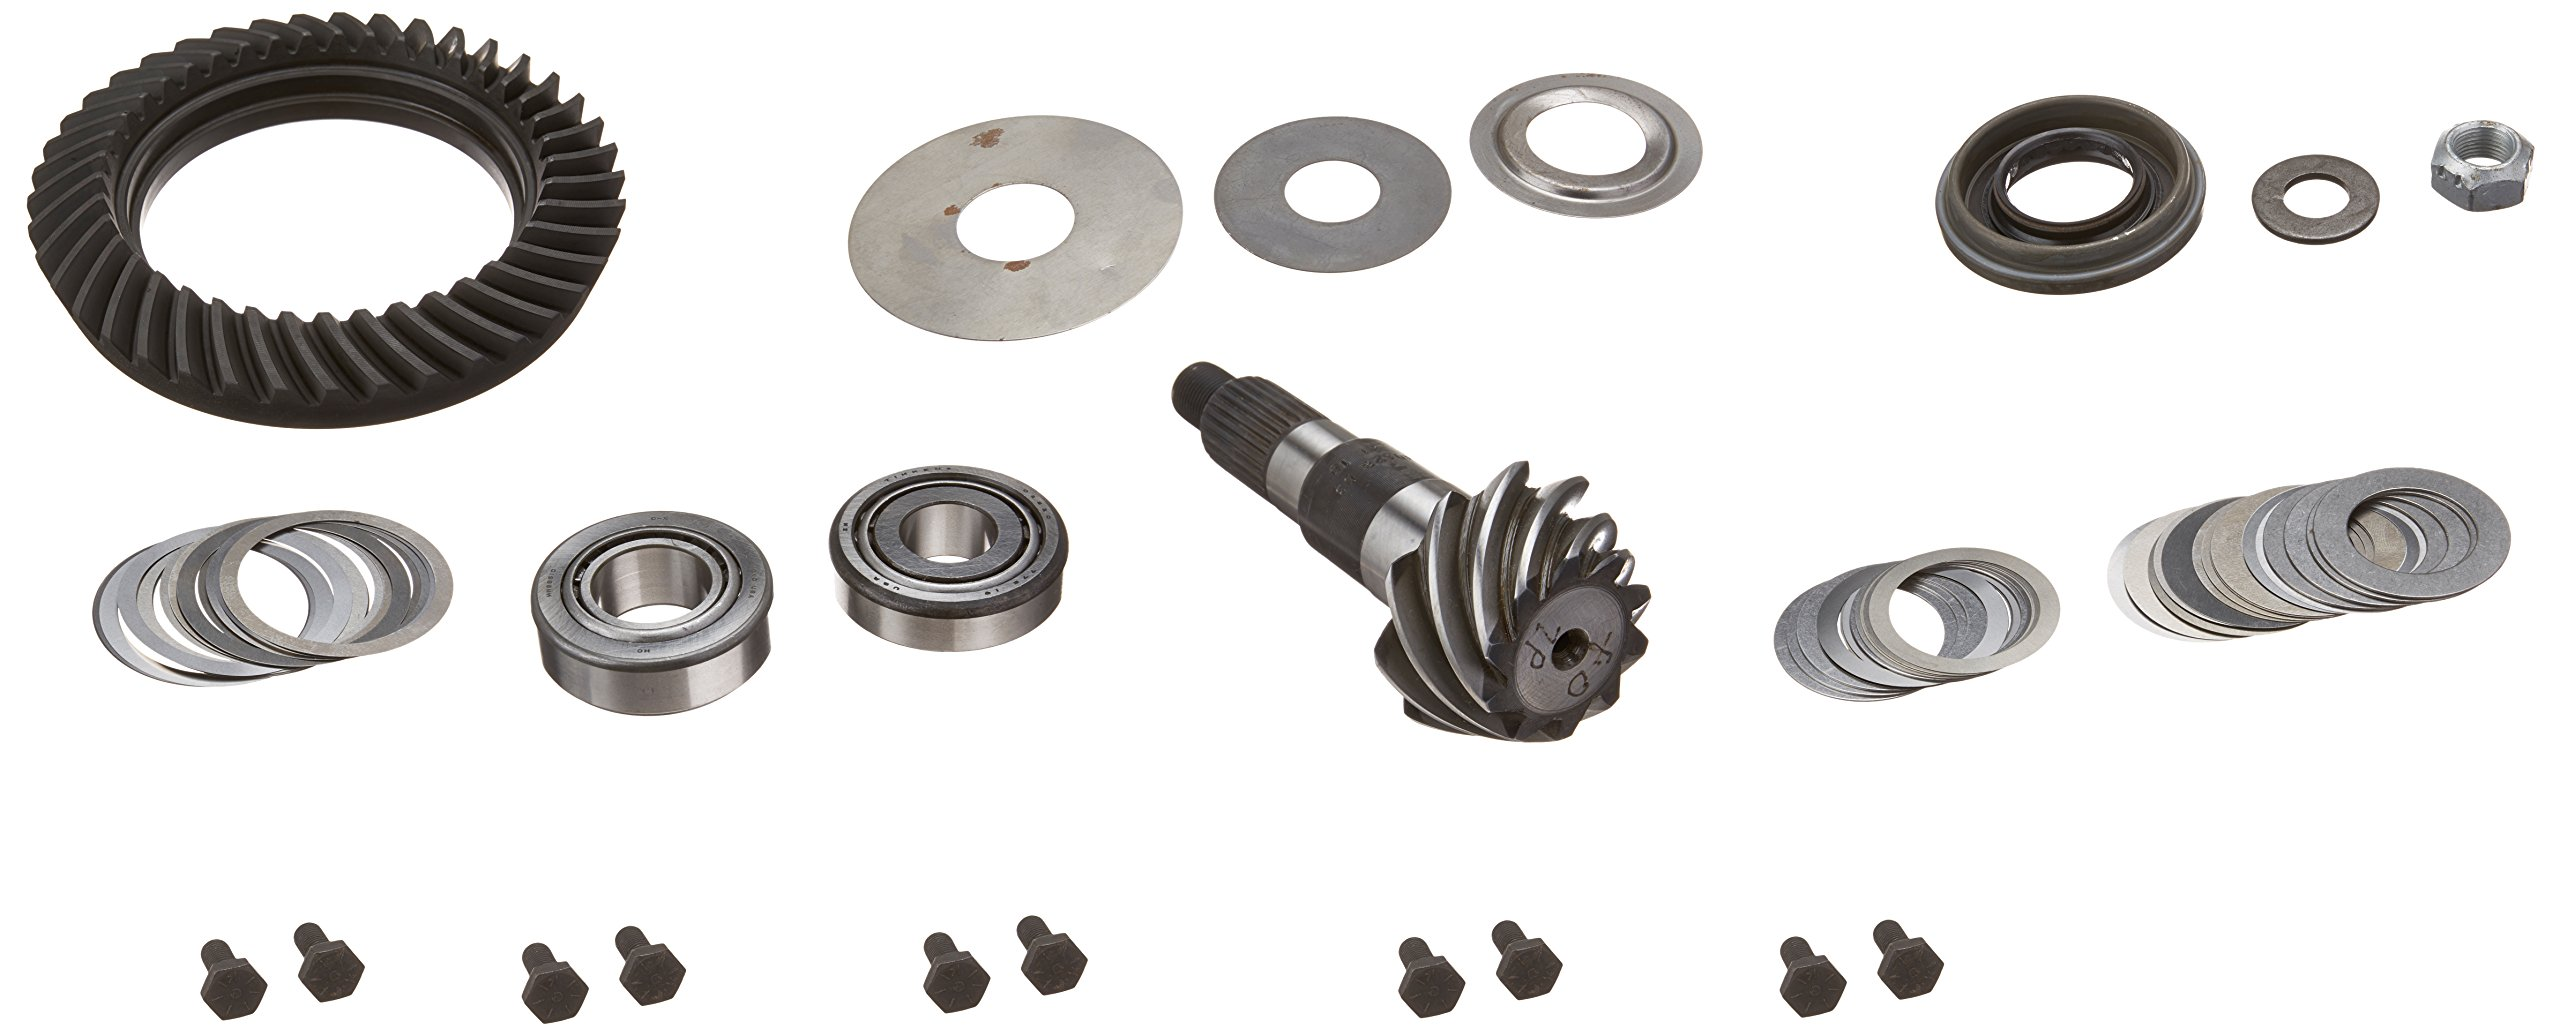 Spicer 706930-4X Ring and Pinion Gear Set